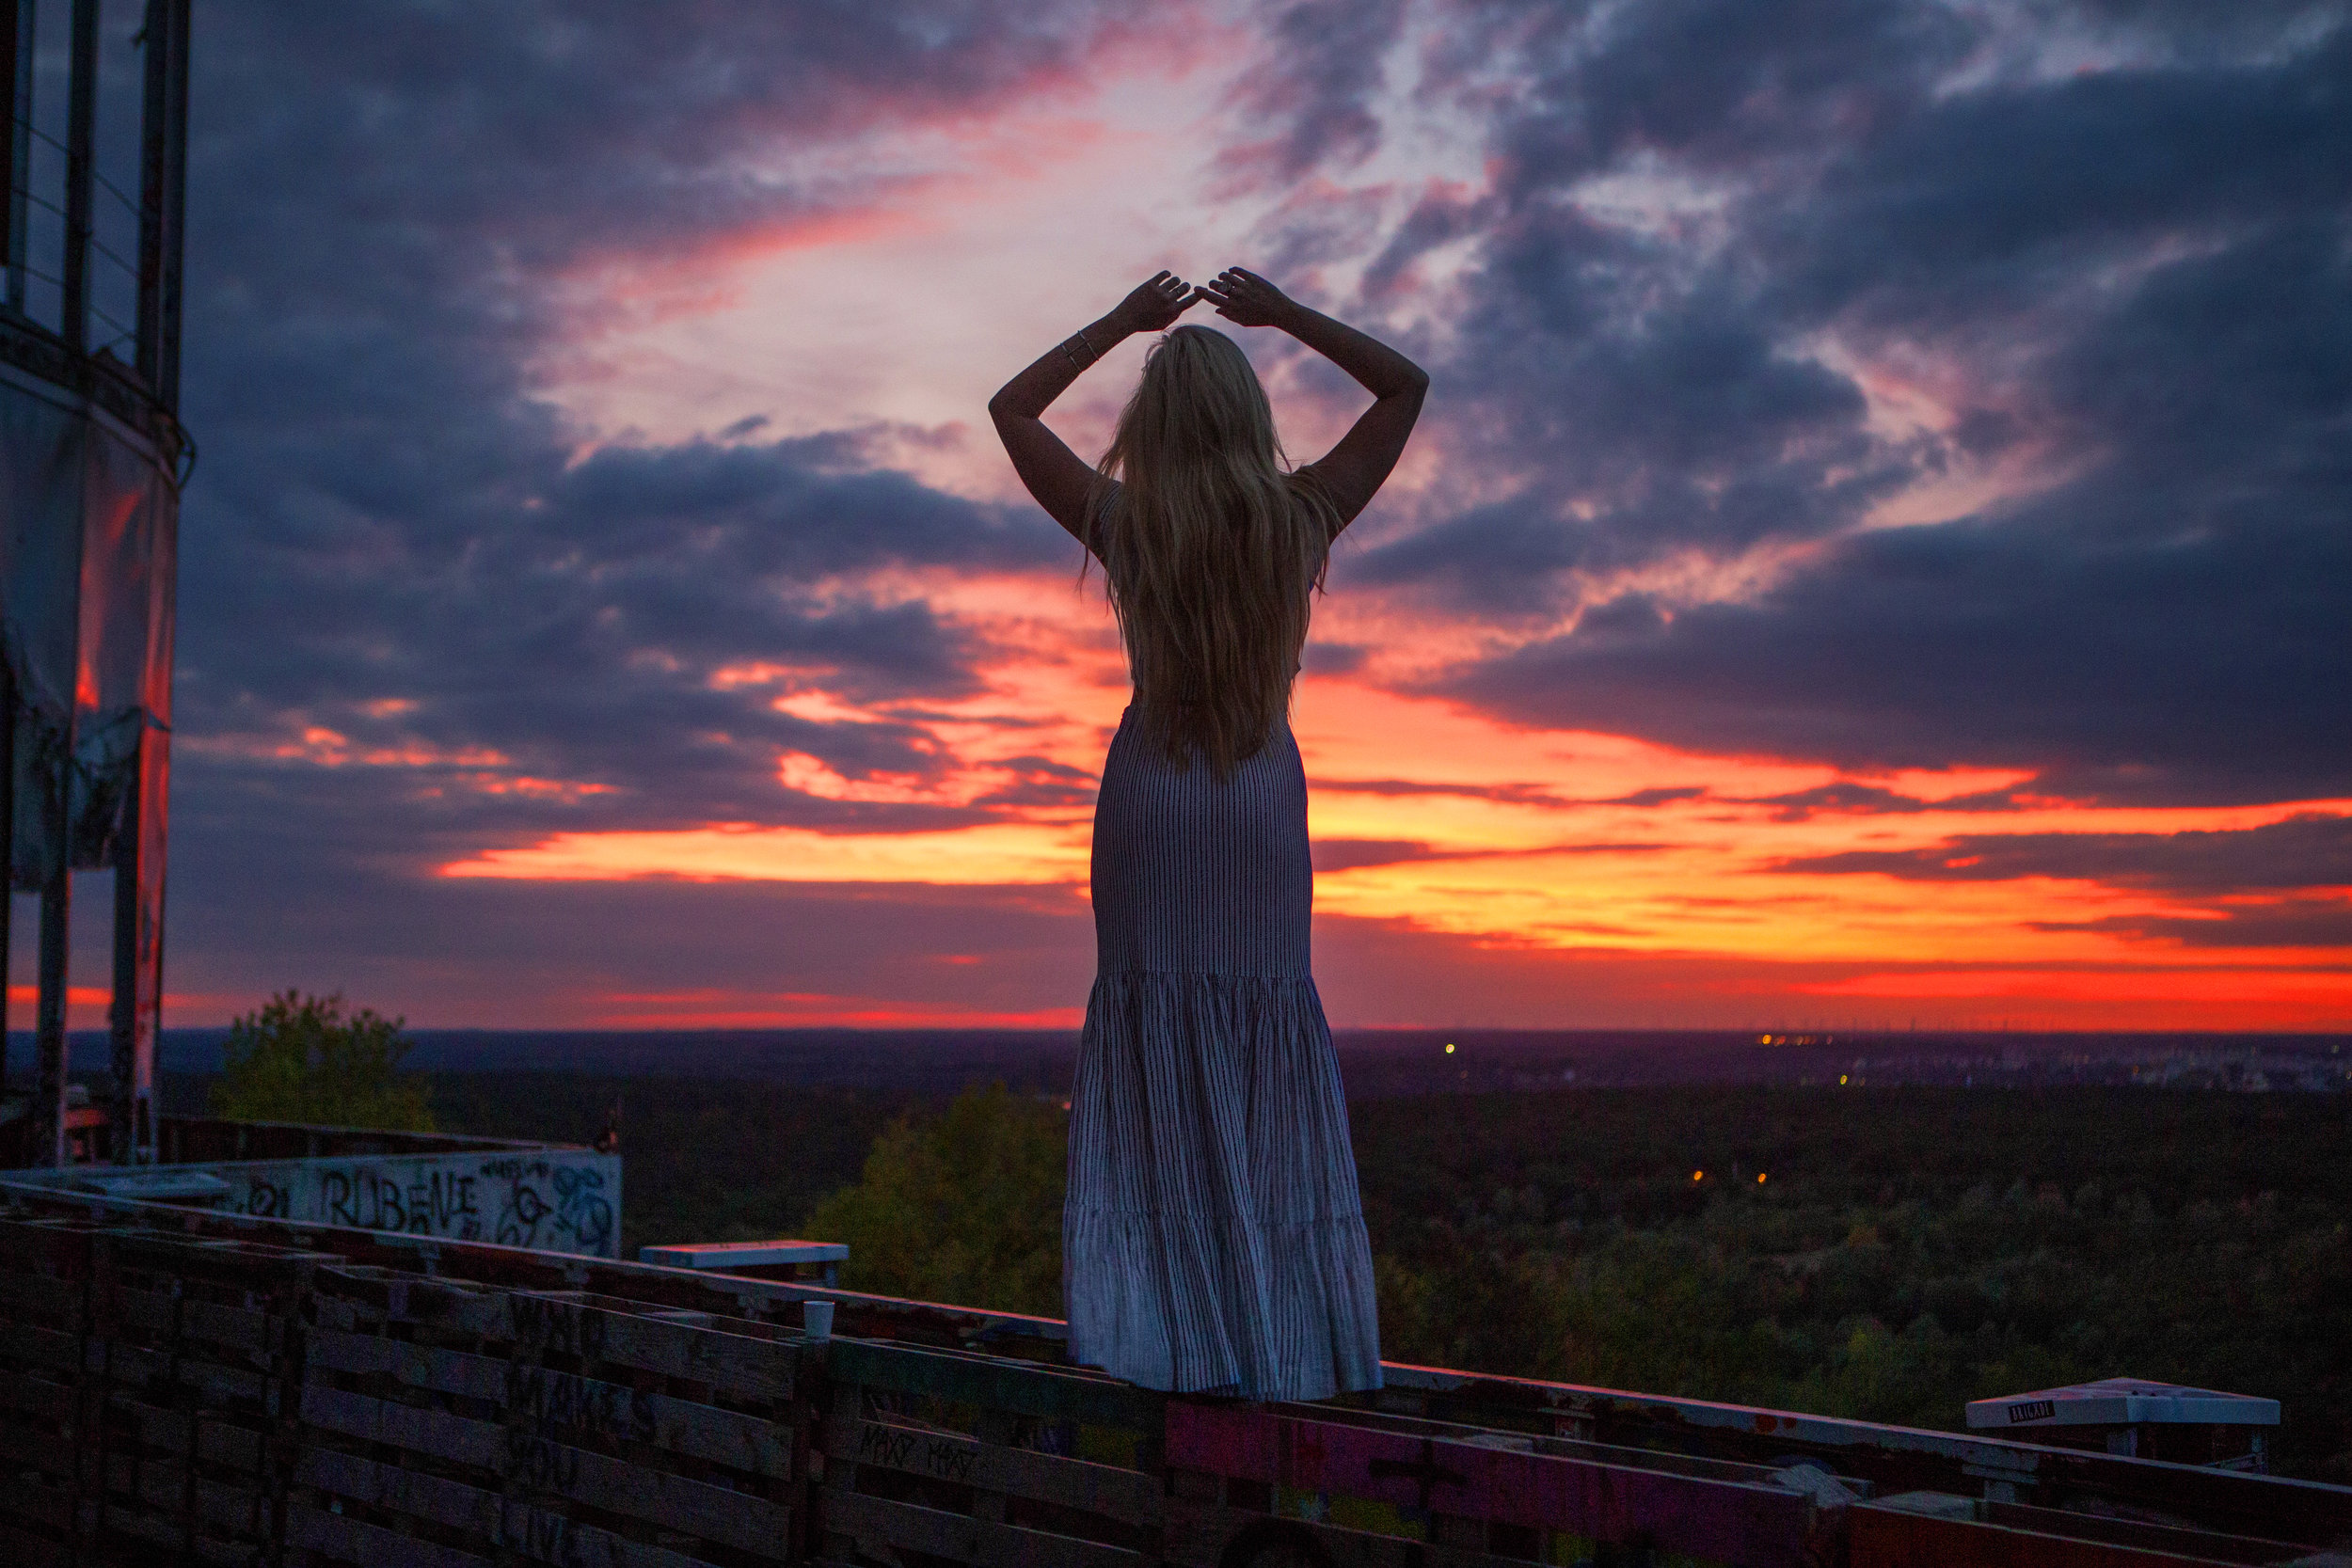 AstroBandit_Teufelsberg_Berlin_Germany_Abandoned_Sunset_12.jpg